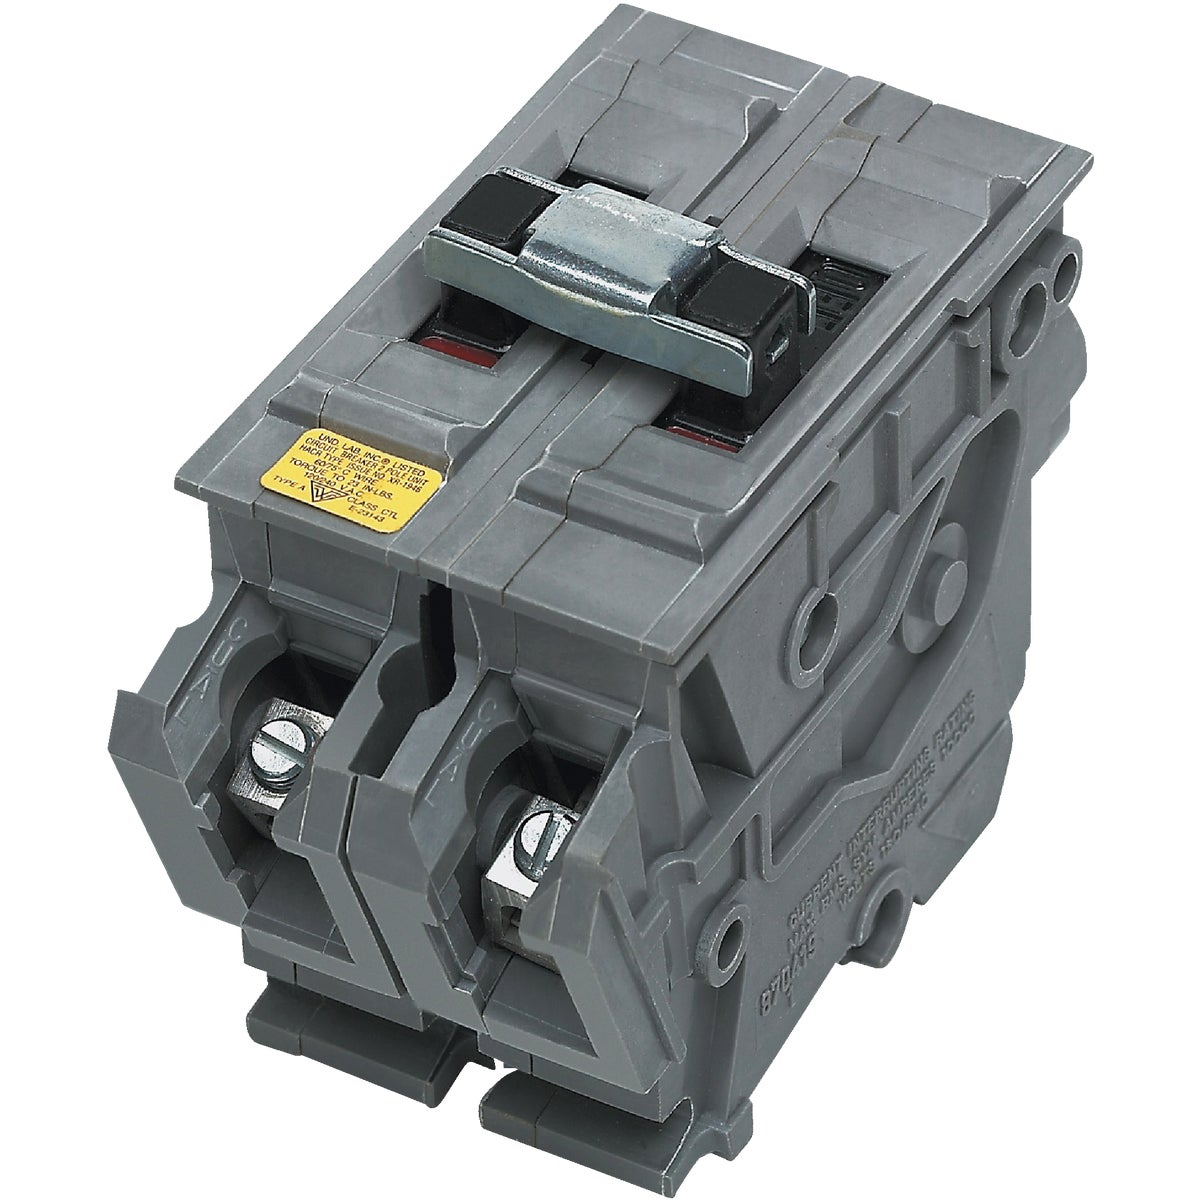 50A 2P CIRCUIT BREAKER - WA250 by Connecticut Electric